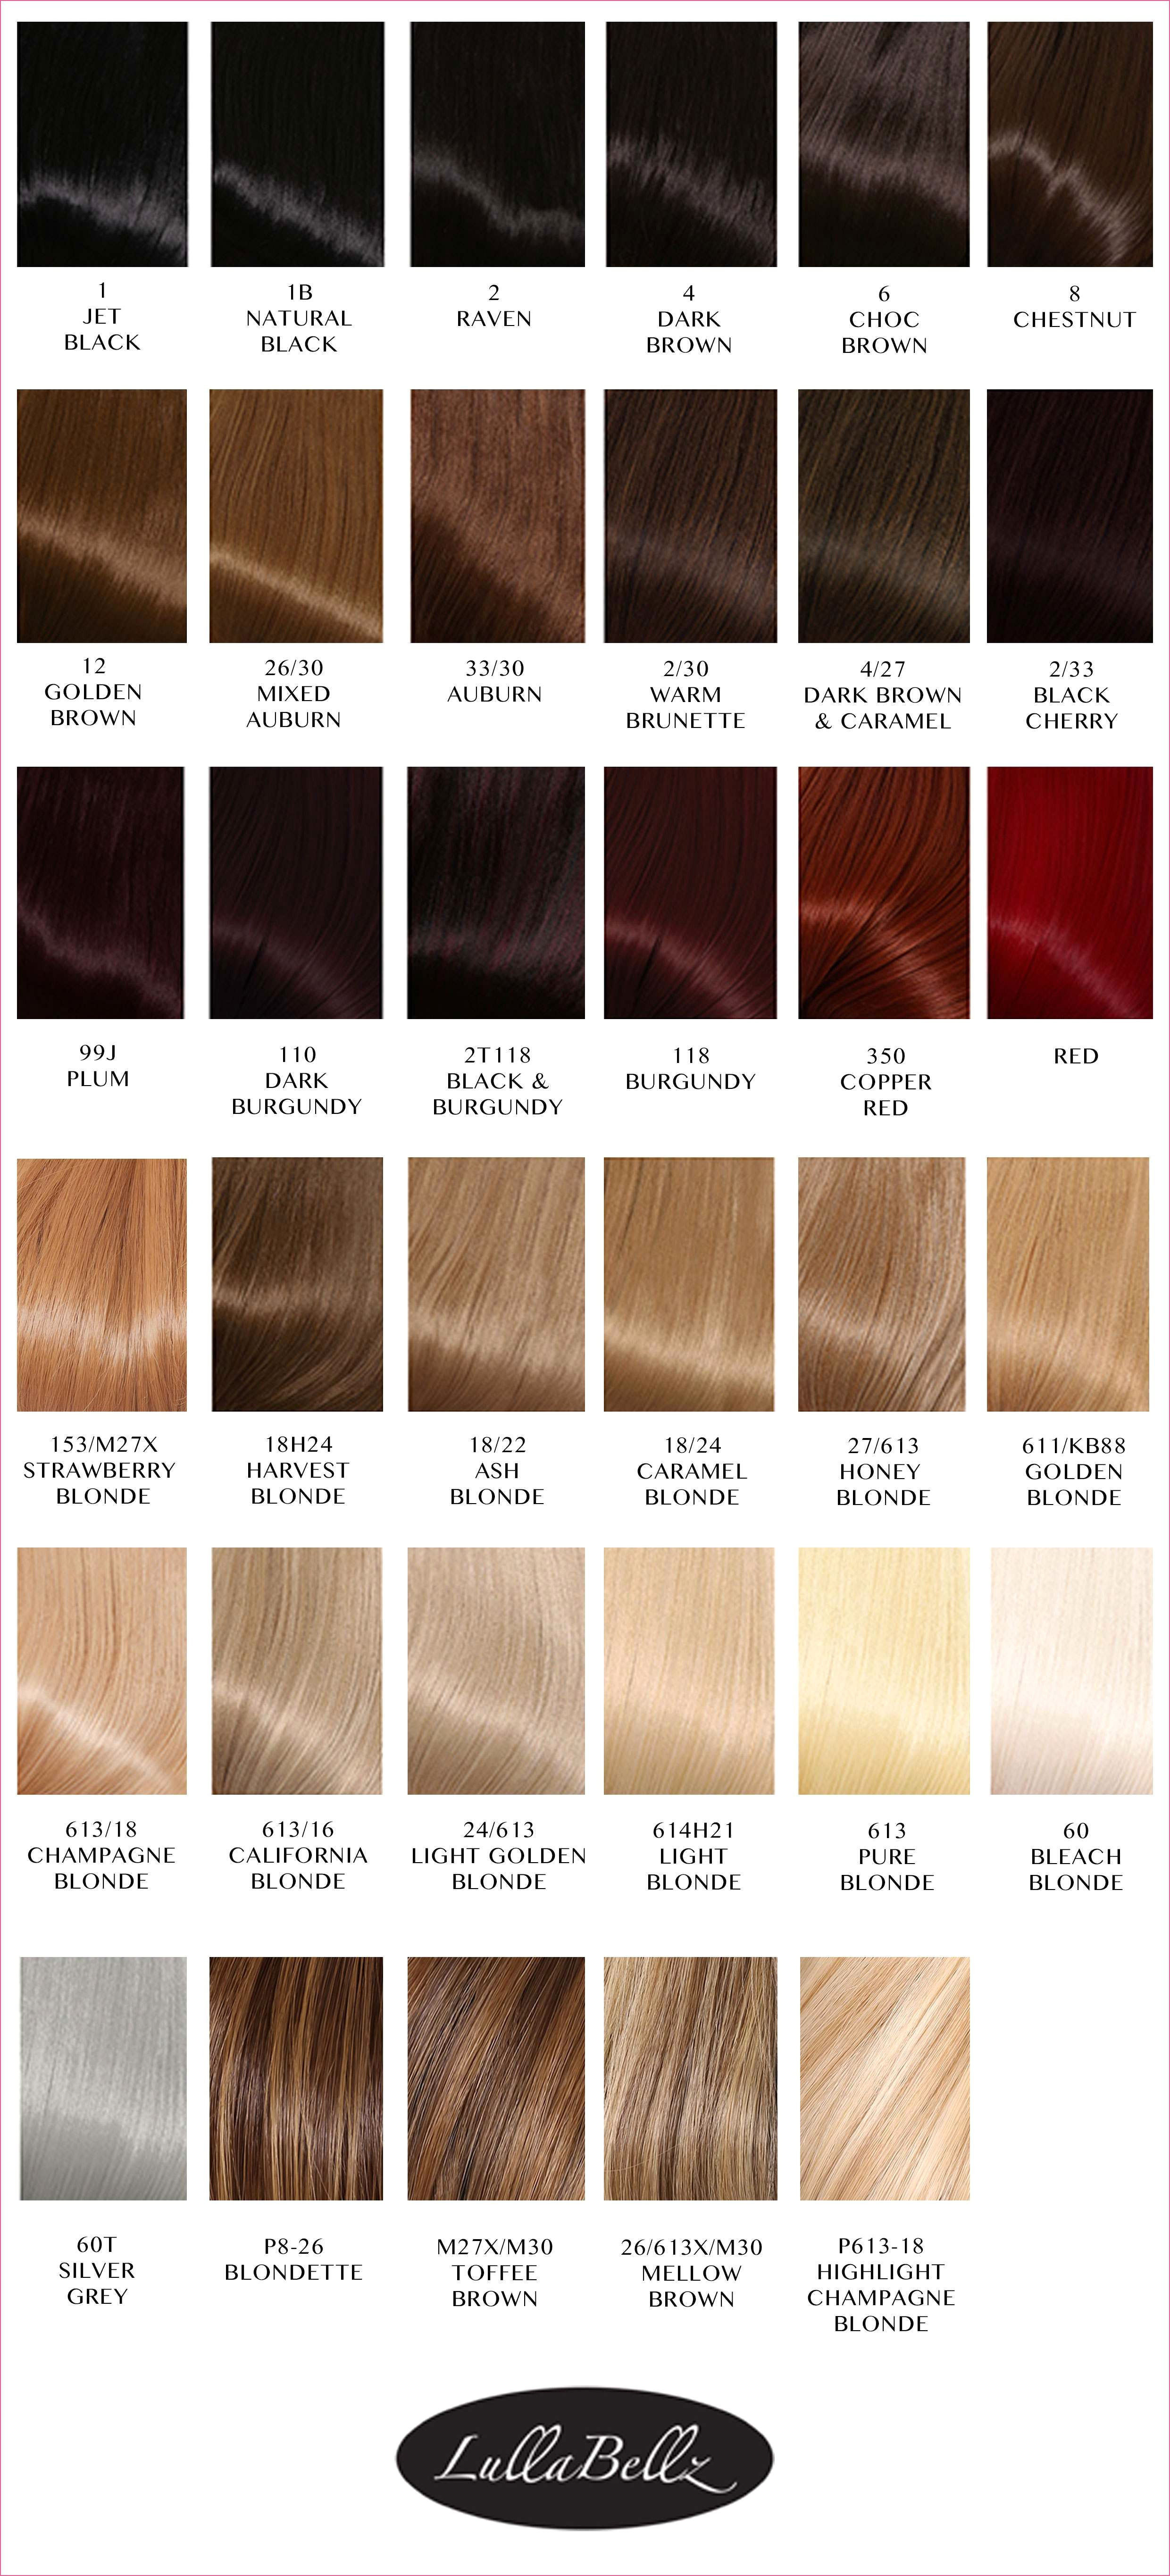 Jazzing Hair Color Cherry Cola Blonde Hair Color Chart Strawberry Blonde Hair Color Professional Hair Color Chart